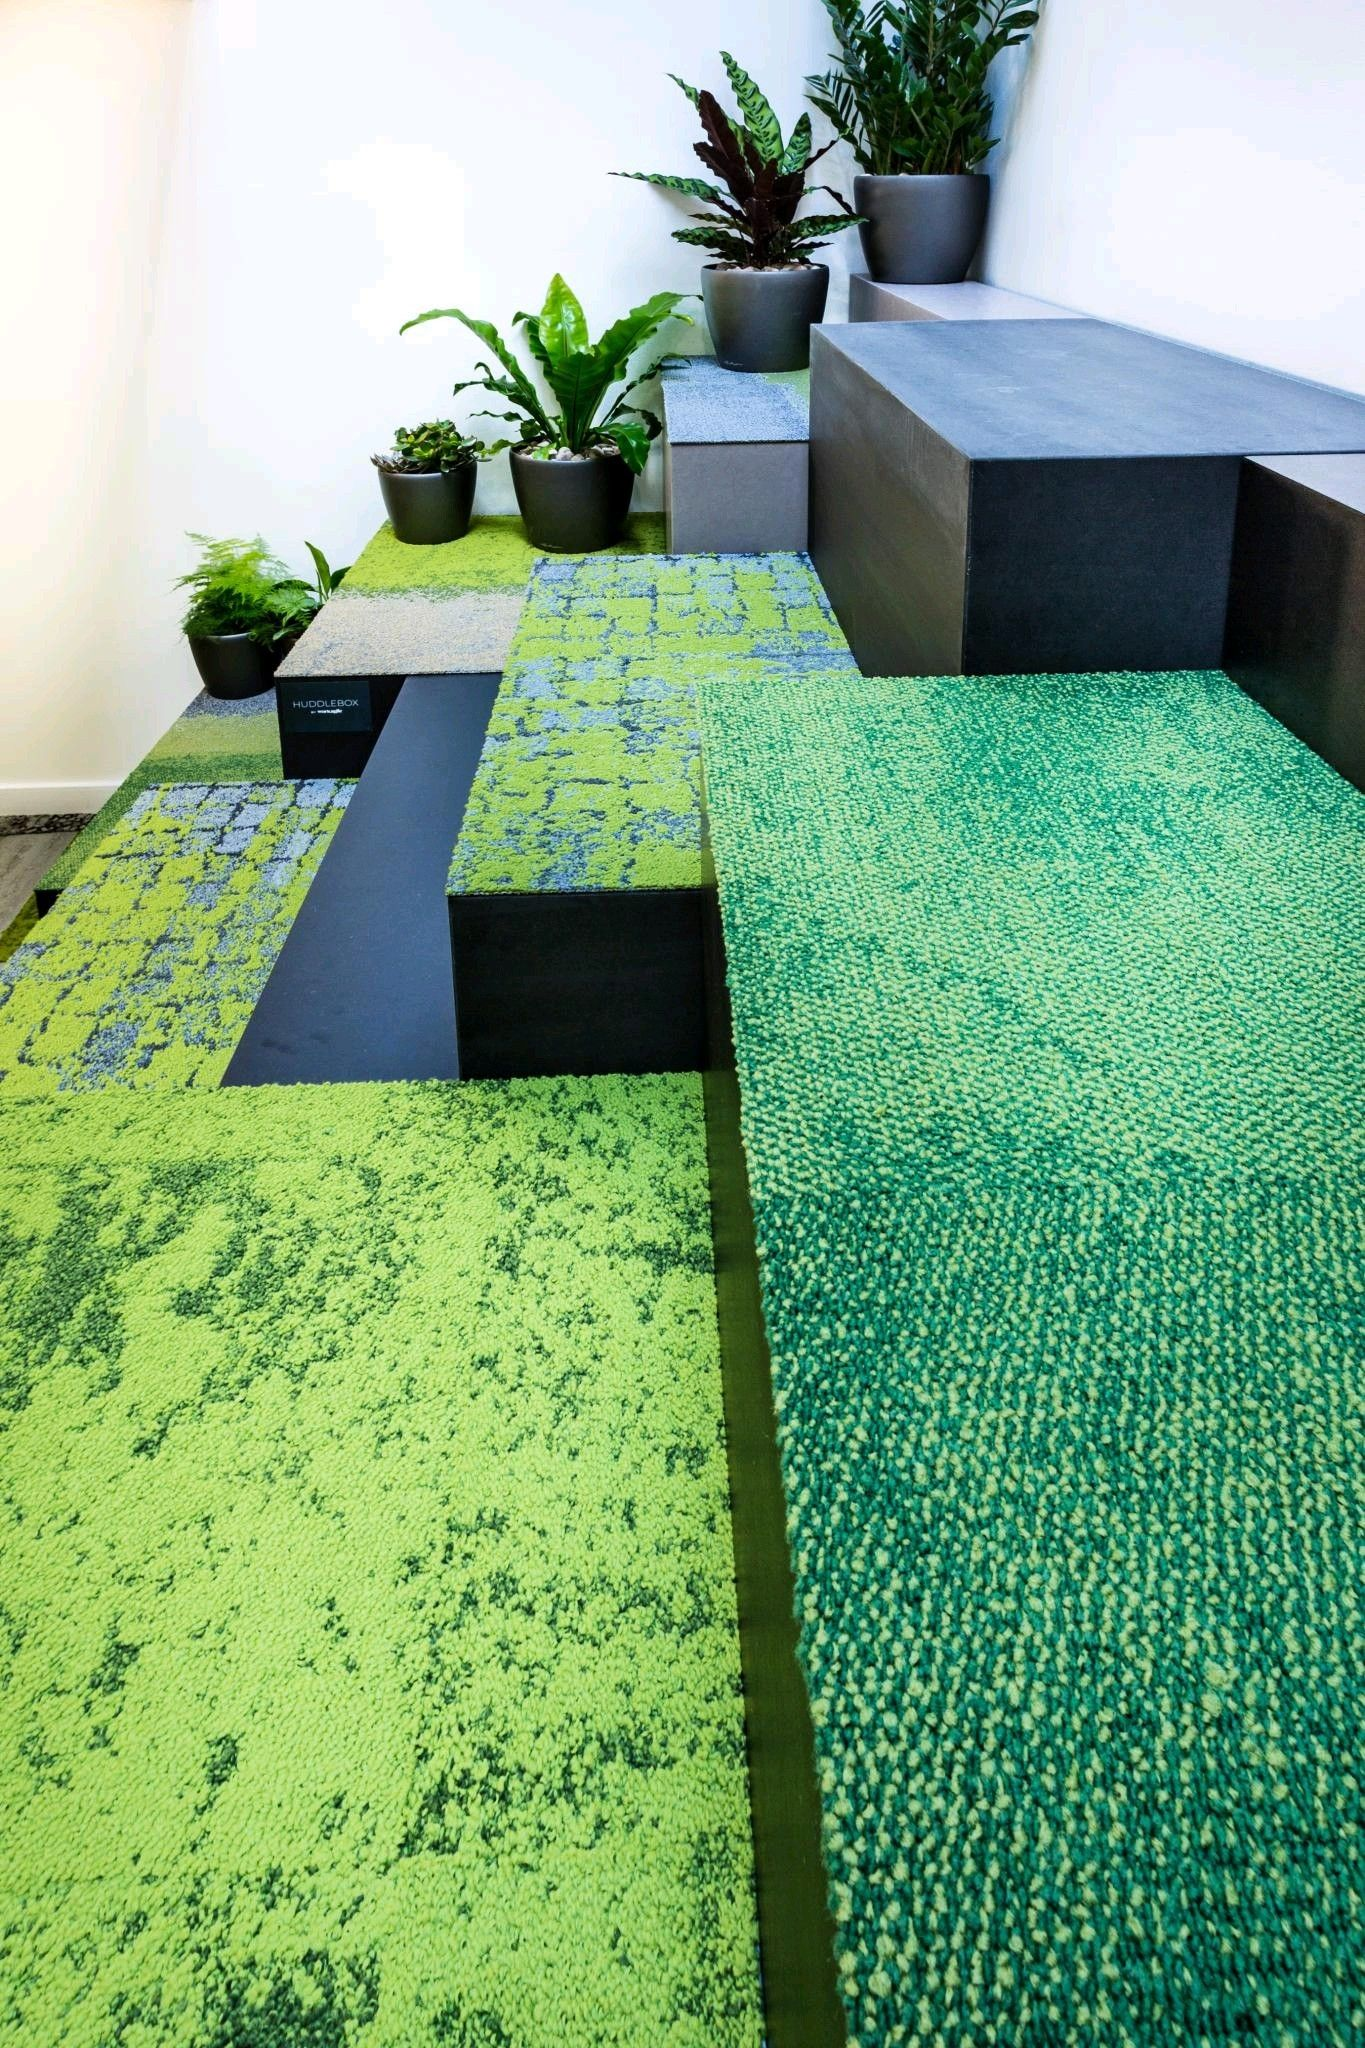 Biophilic Inspired Seating - Huddlebox® by Workagile